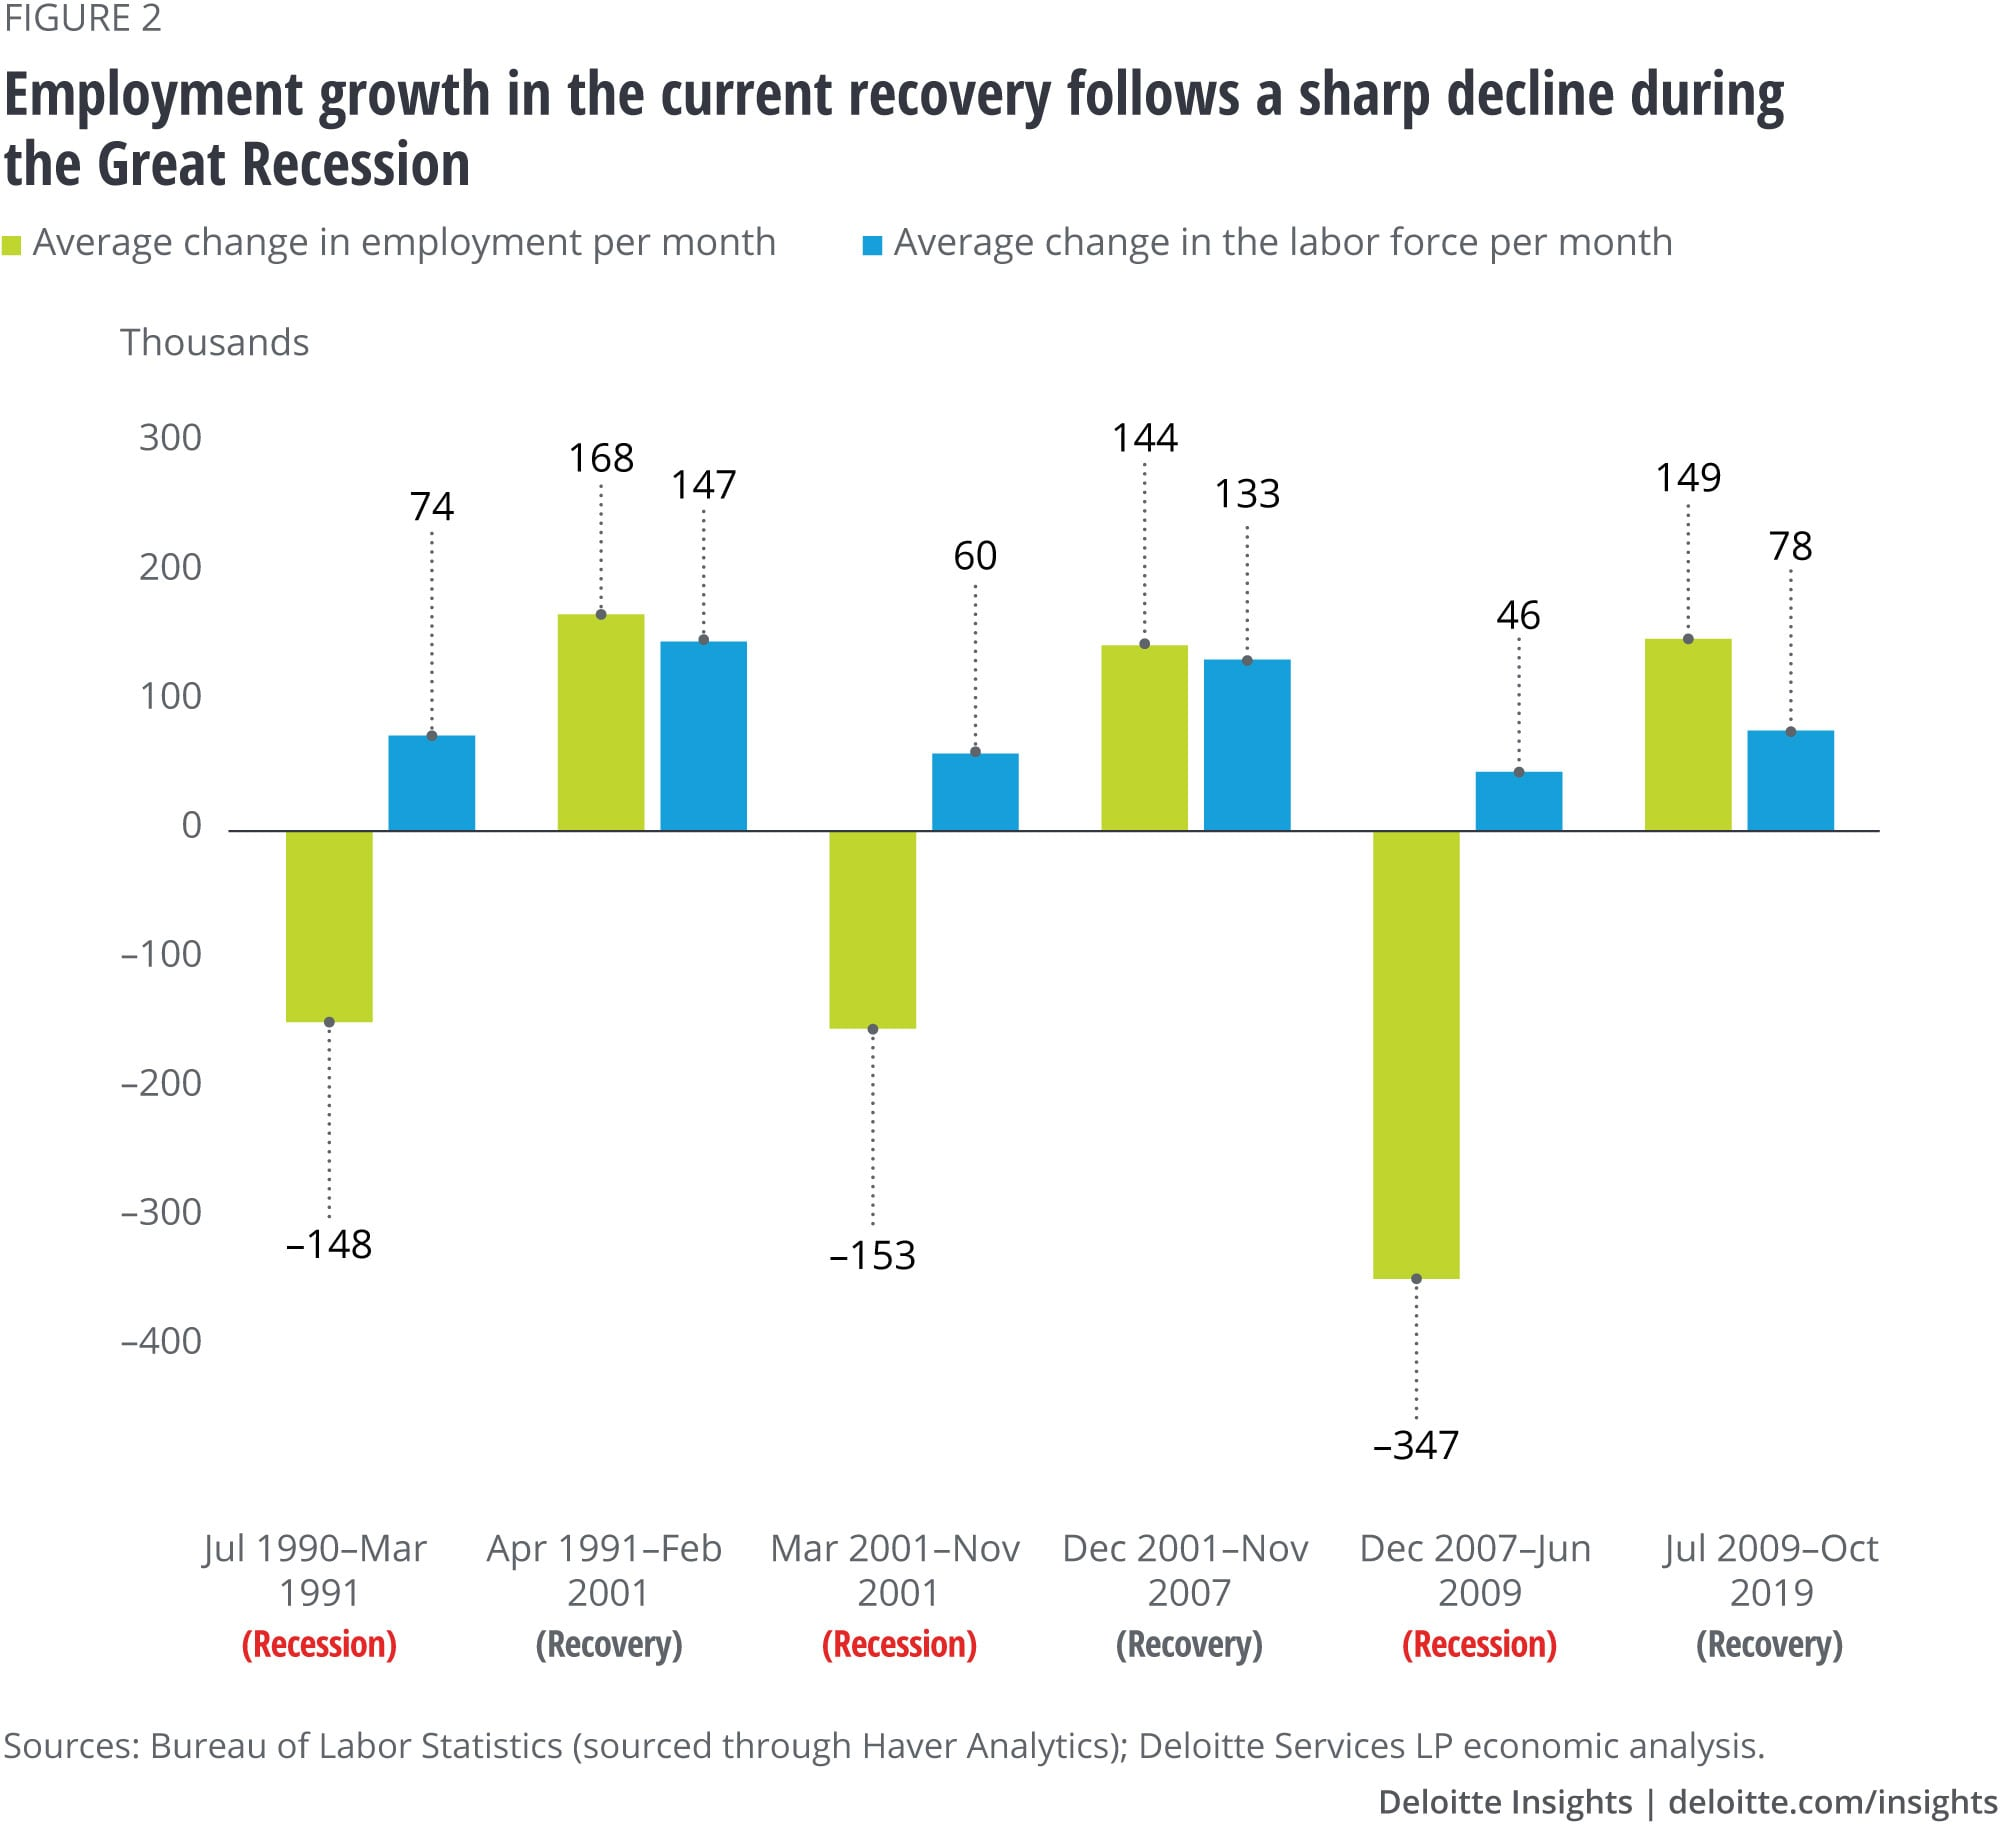 Employment growth in the current recovery follows a sharp decline in the Great Recession